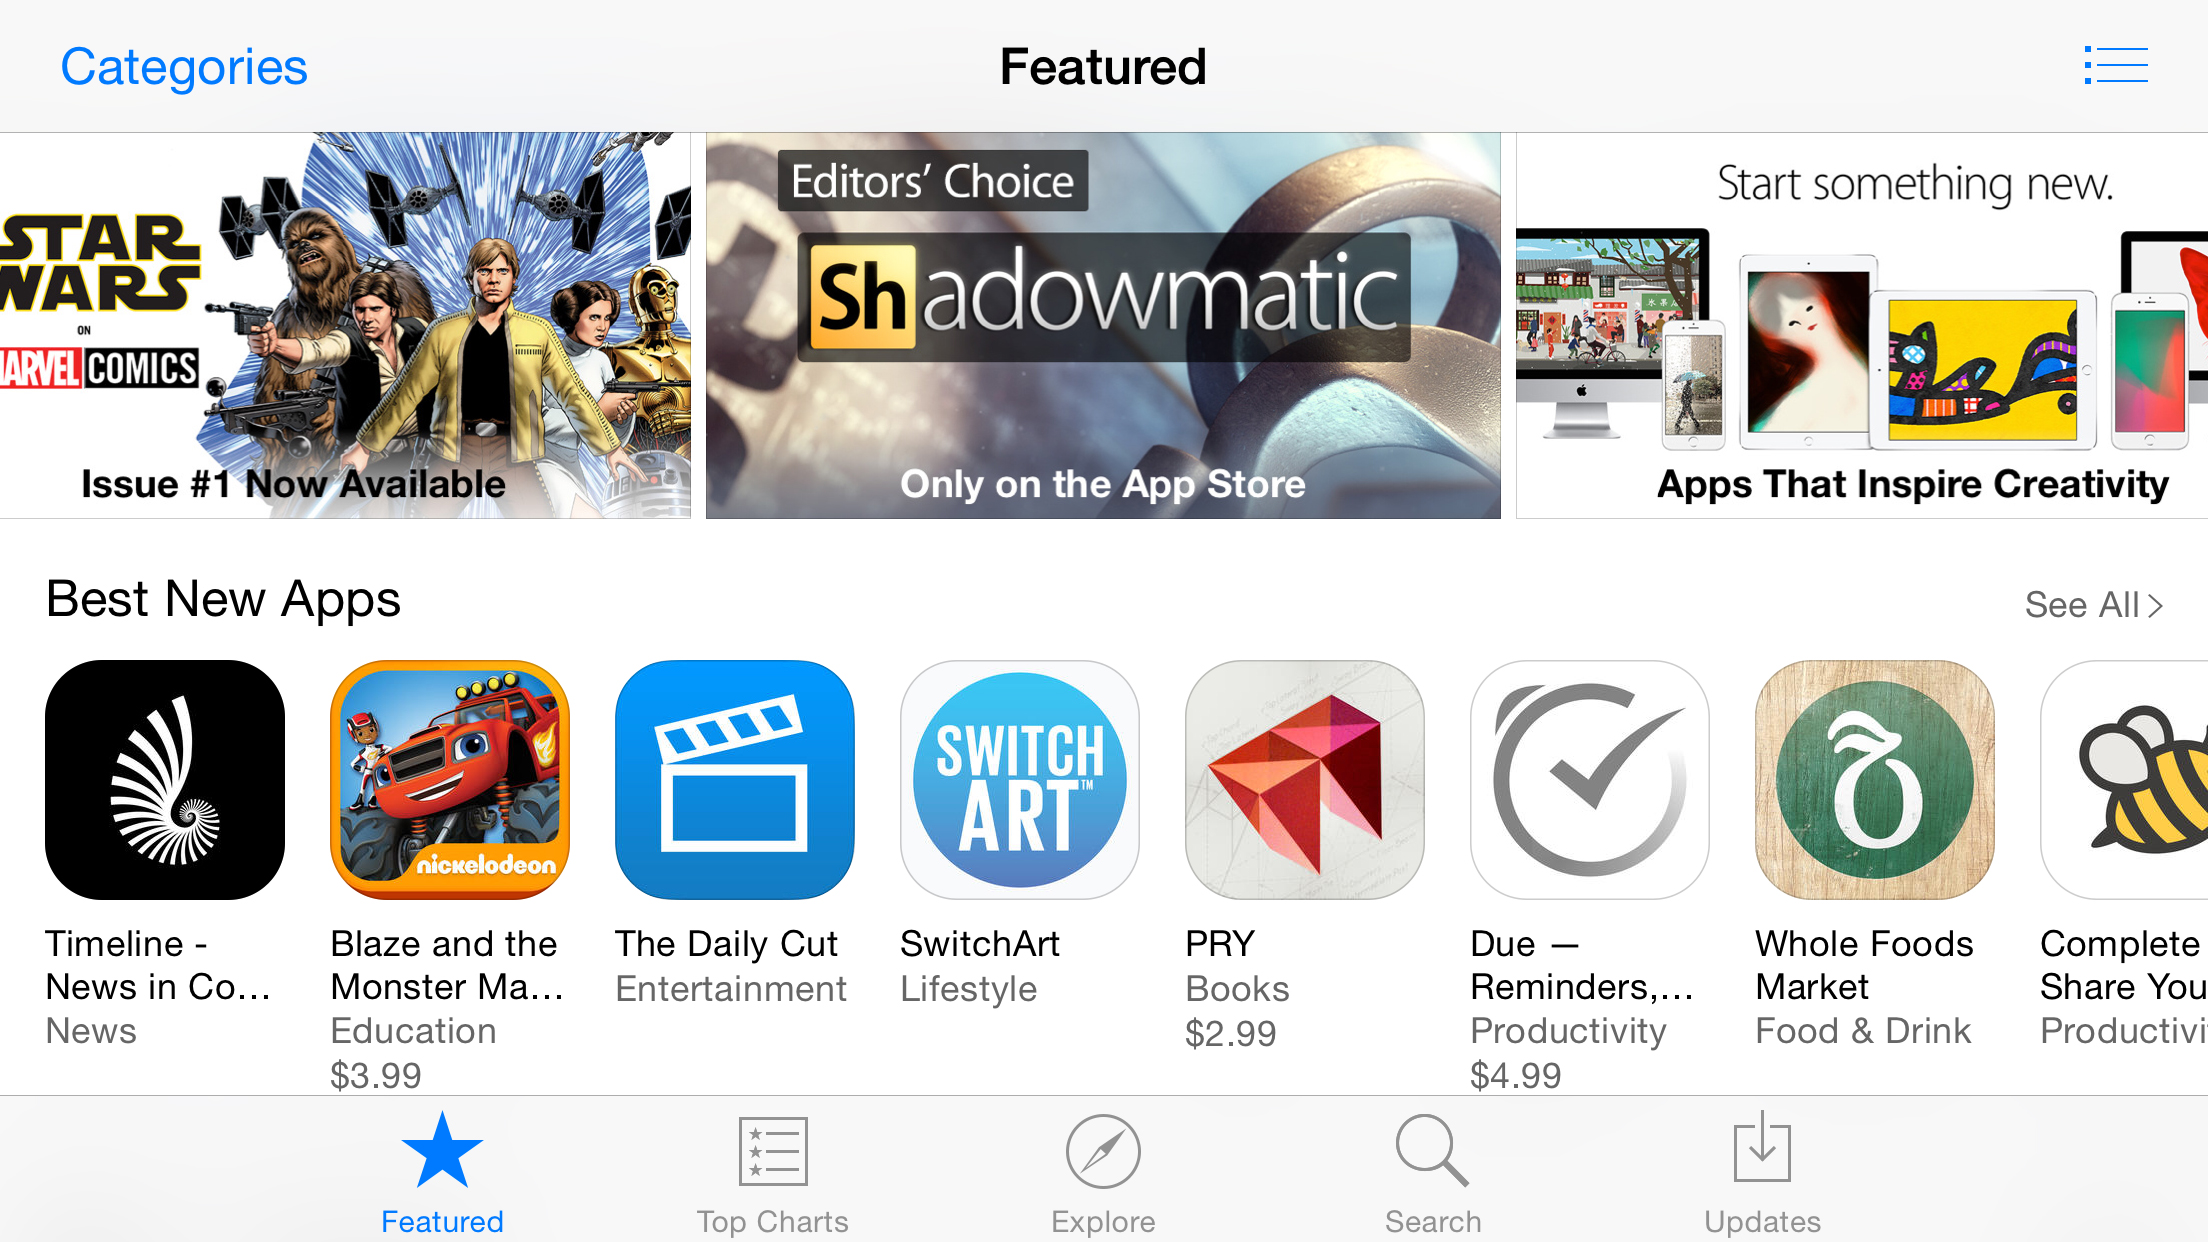 Apple's App Store is now bigger than Hollywood